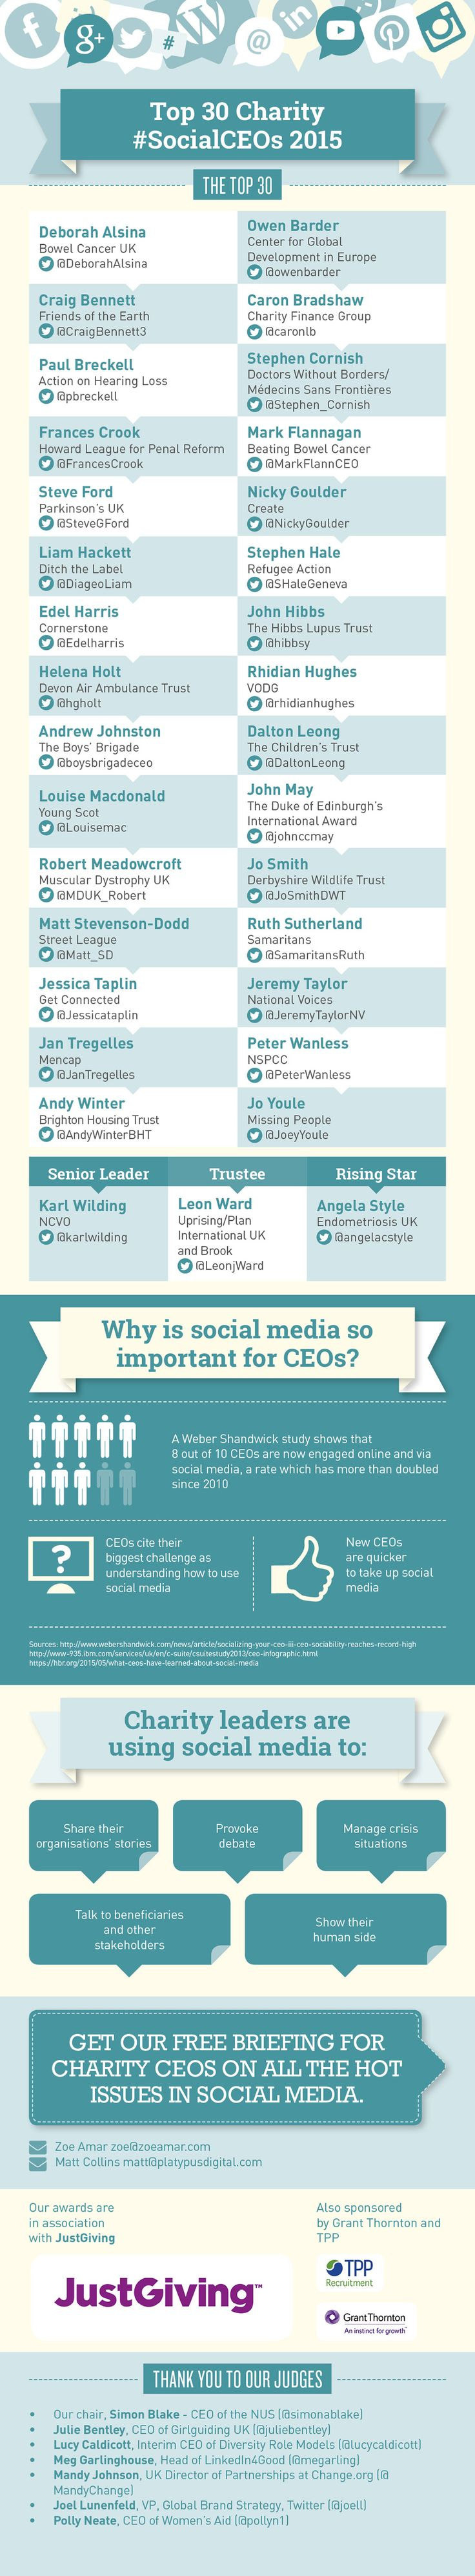 Thank you for your interest in the Social CEOs 2015! Download our fantastic 'How to survive and thrive as a Social CEO' PDF guide, and see all the winners below.   Here you can find our infographic listing the 'Top Charity CEOs' Infographic as a JPEG. For any further information please contact zoe@zoeamar.com or matt@platypusdigital.com.